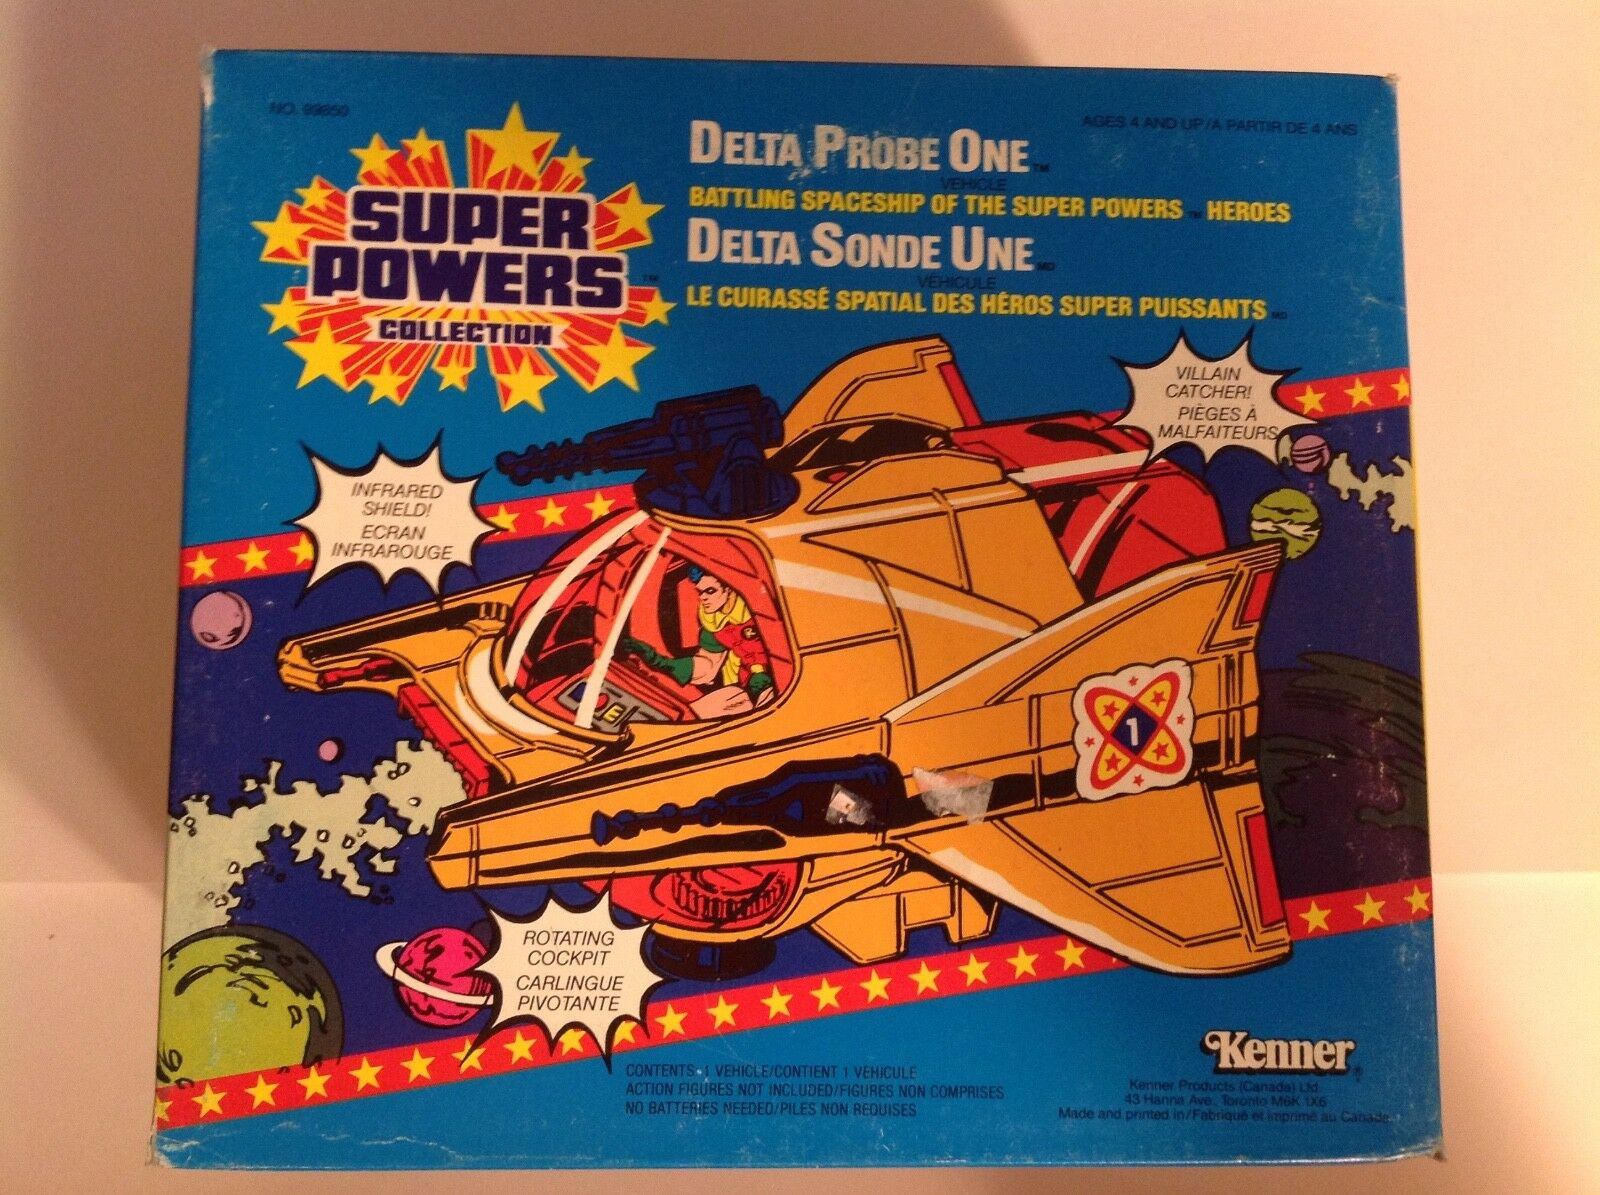 Kenner Super Powers Collection Delta Probe One Canadian sealed box MISB1985